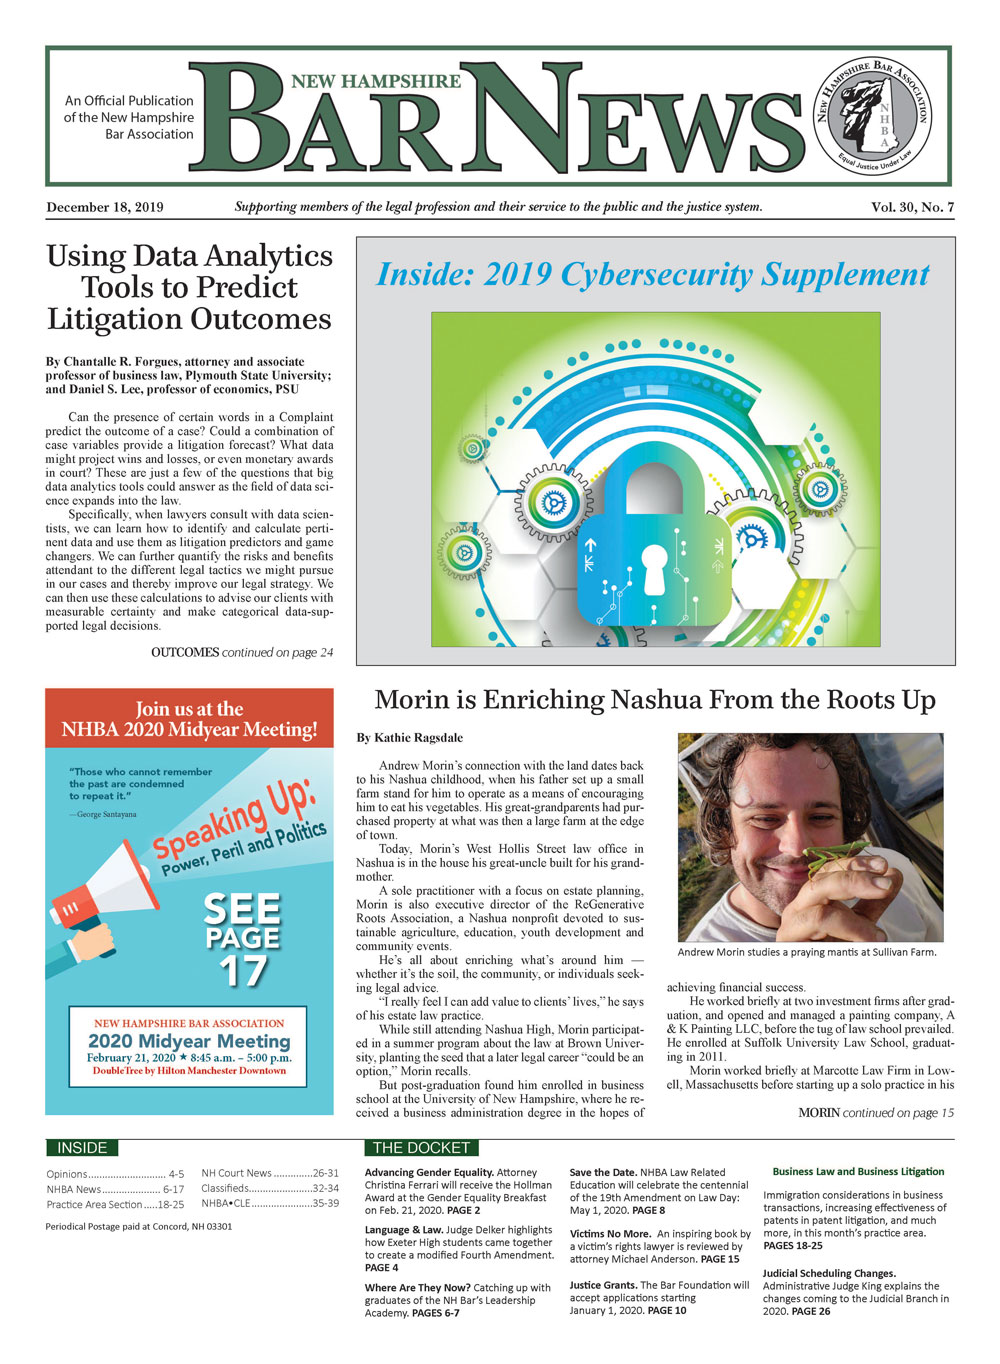 Front page of the Bar News December 18, 2019